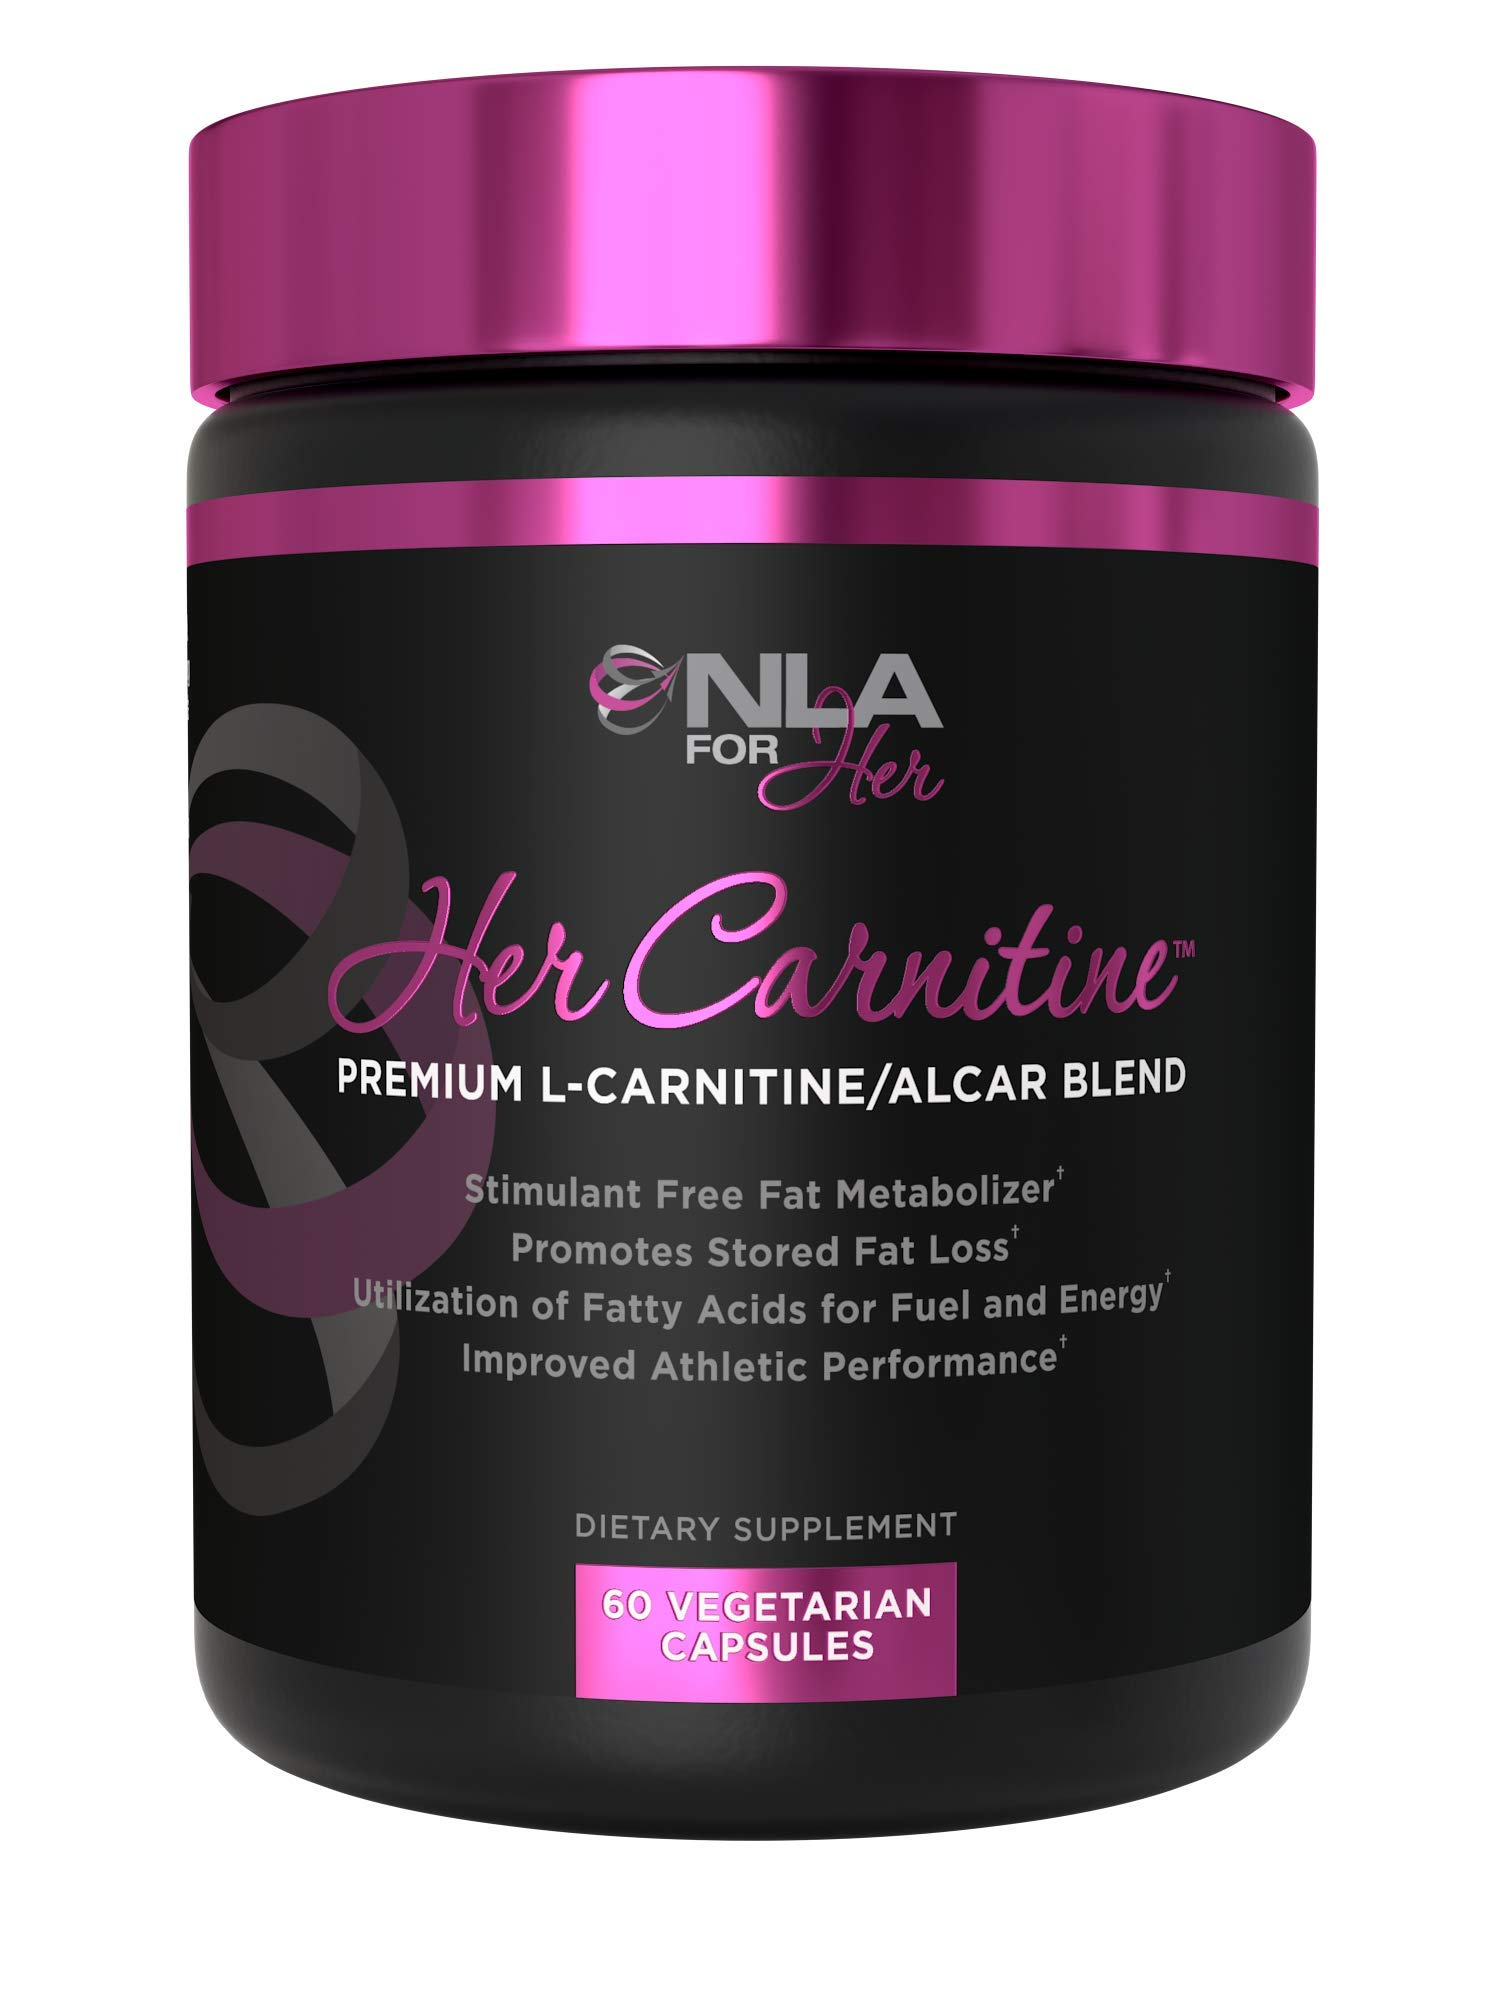 NLA for Her - Her Carnitine - Premium L-Carntine/ALCAR Blend - Supports Fat Loss (Stimulant Fee), Improved Athletic Performance & Provides Fuel and Energy - 60 Capsules by NLA for Her